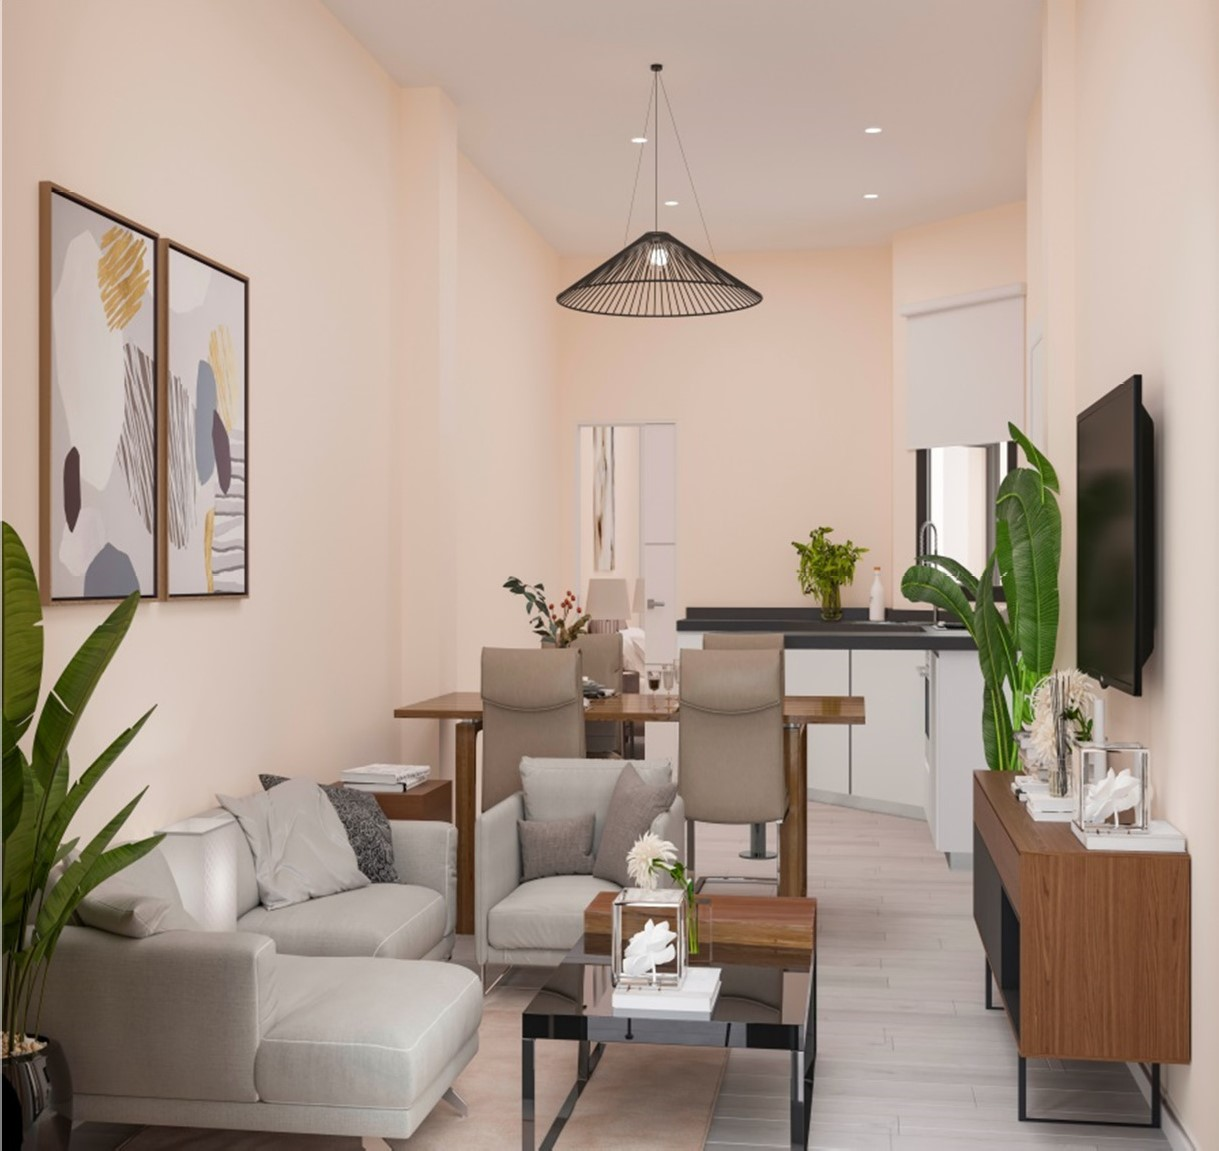 Apartment,For Sale,1147